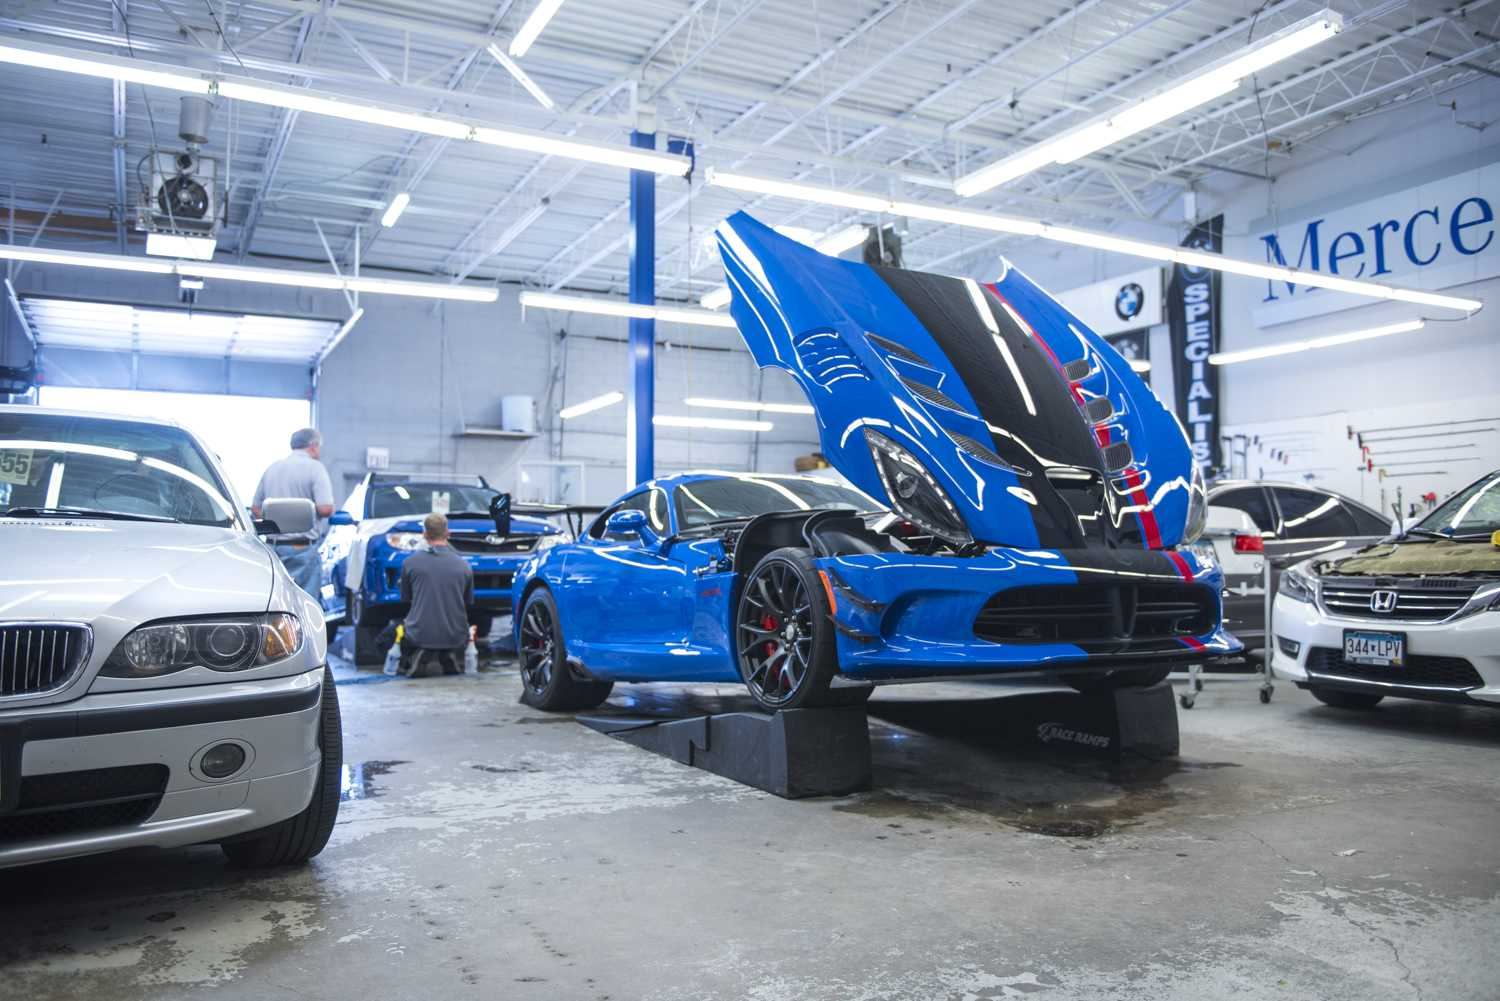 2017 Dodge Viper Acr Midwest Clear Bra